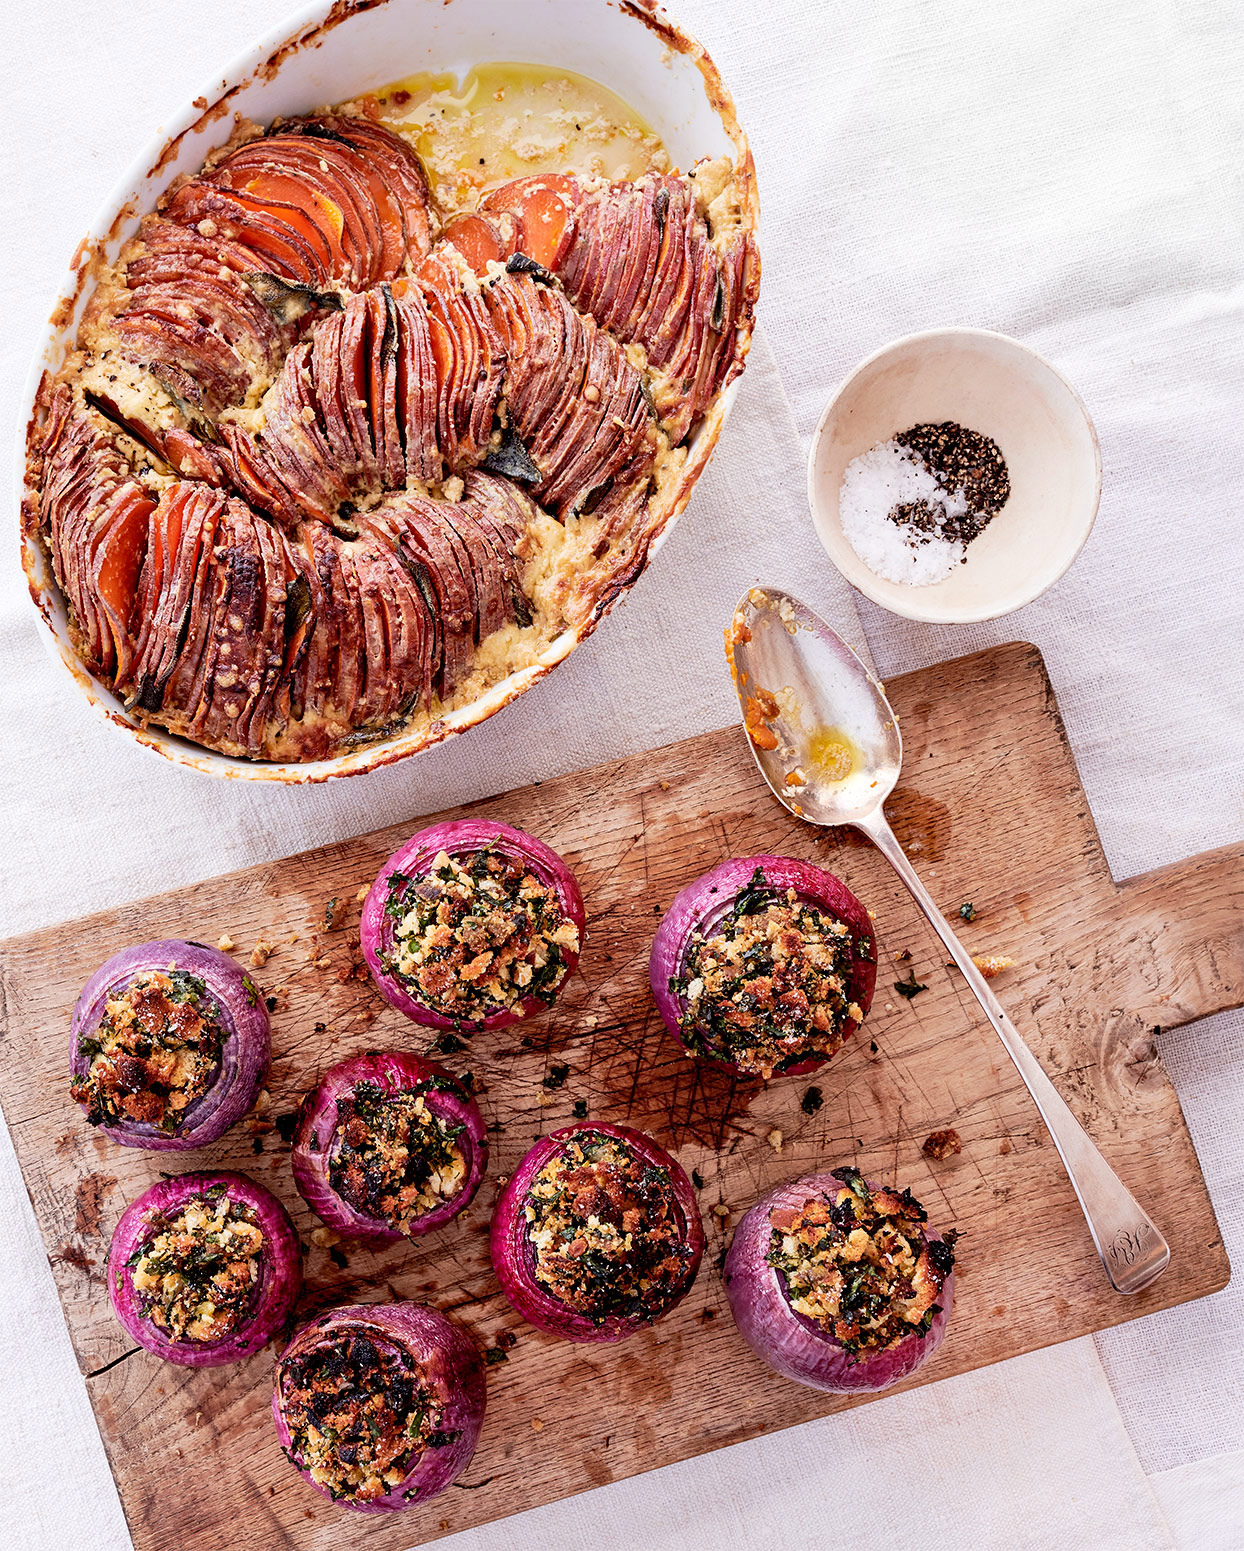 sweet-potato-and-sage tian and red onions stuffed with parsley breadcrumbs